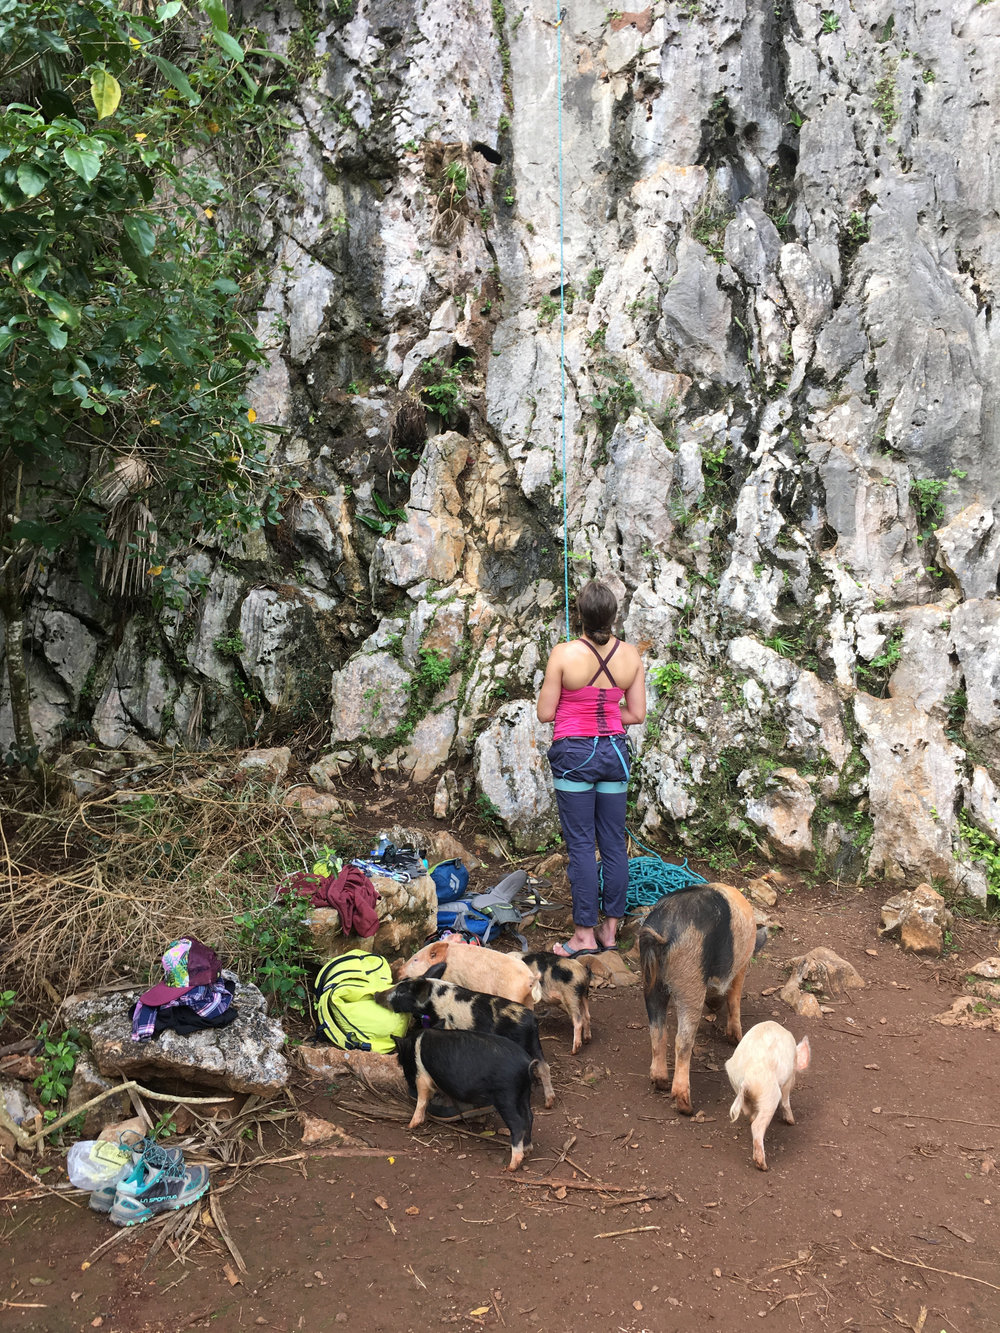 Belaying with pigs in Cuba!